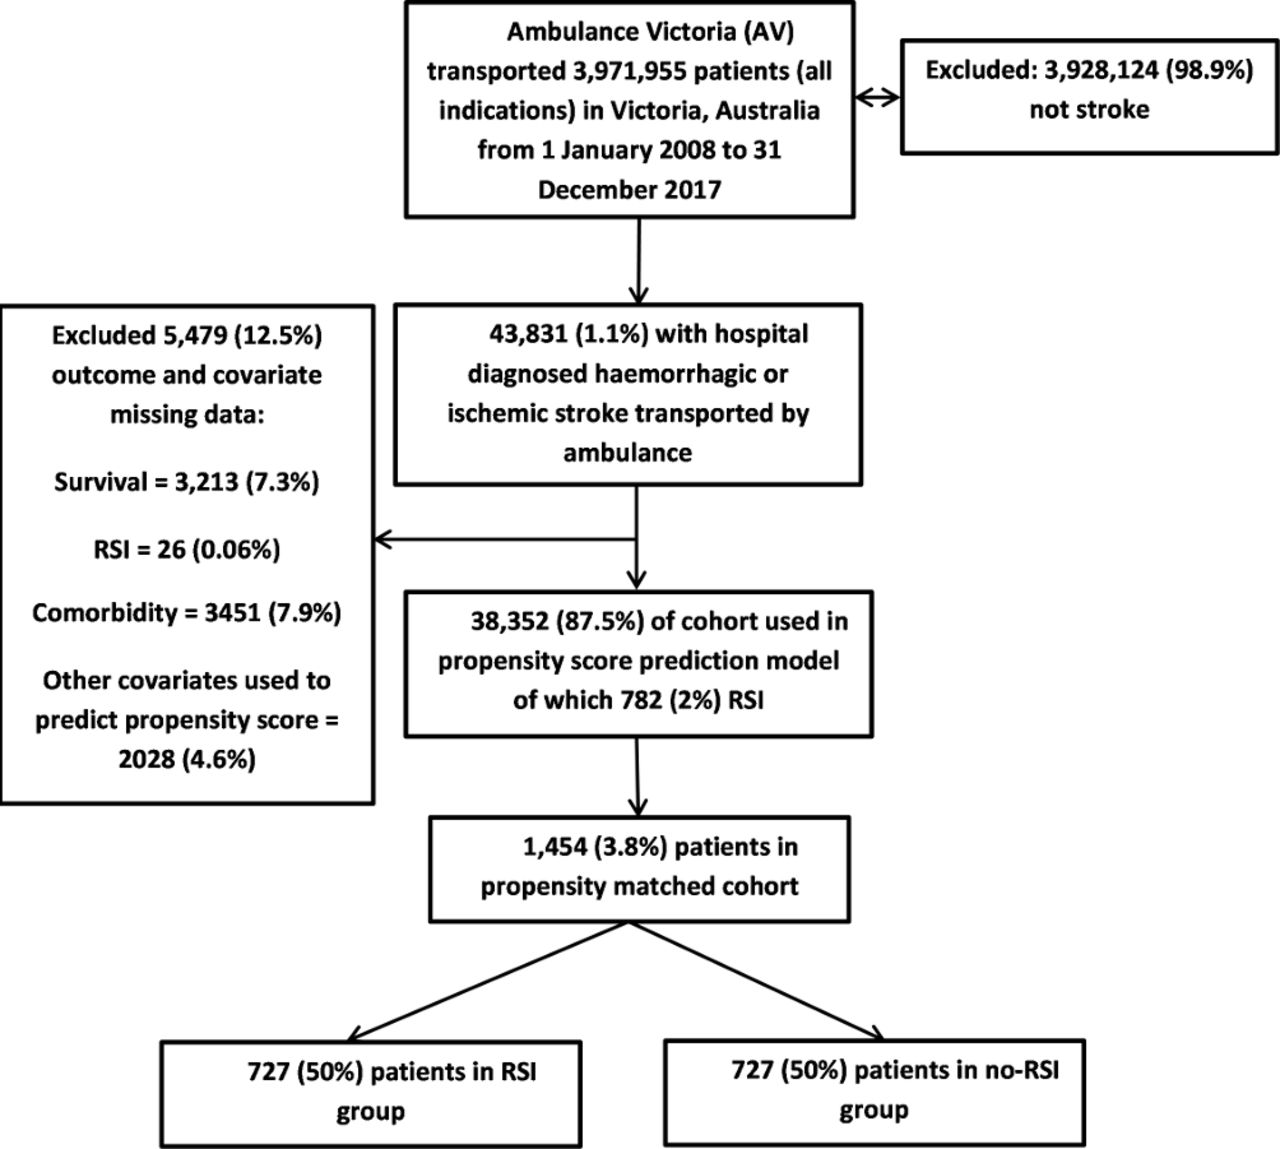 The association of paramedic rapid sequence intubation and